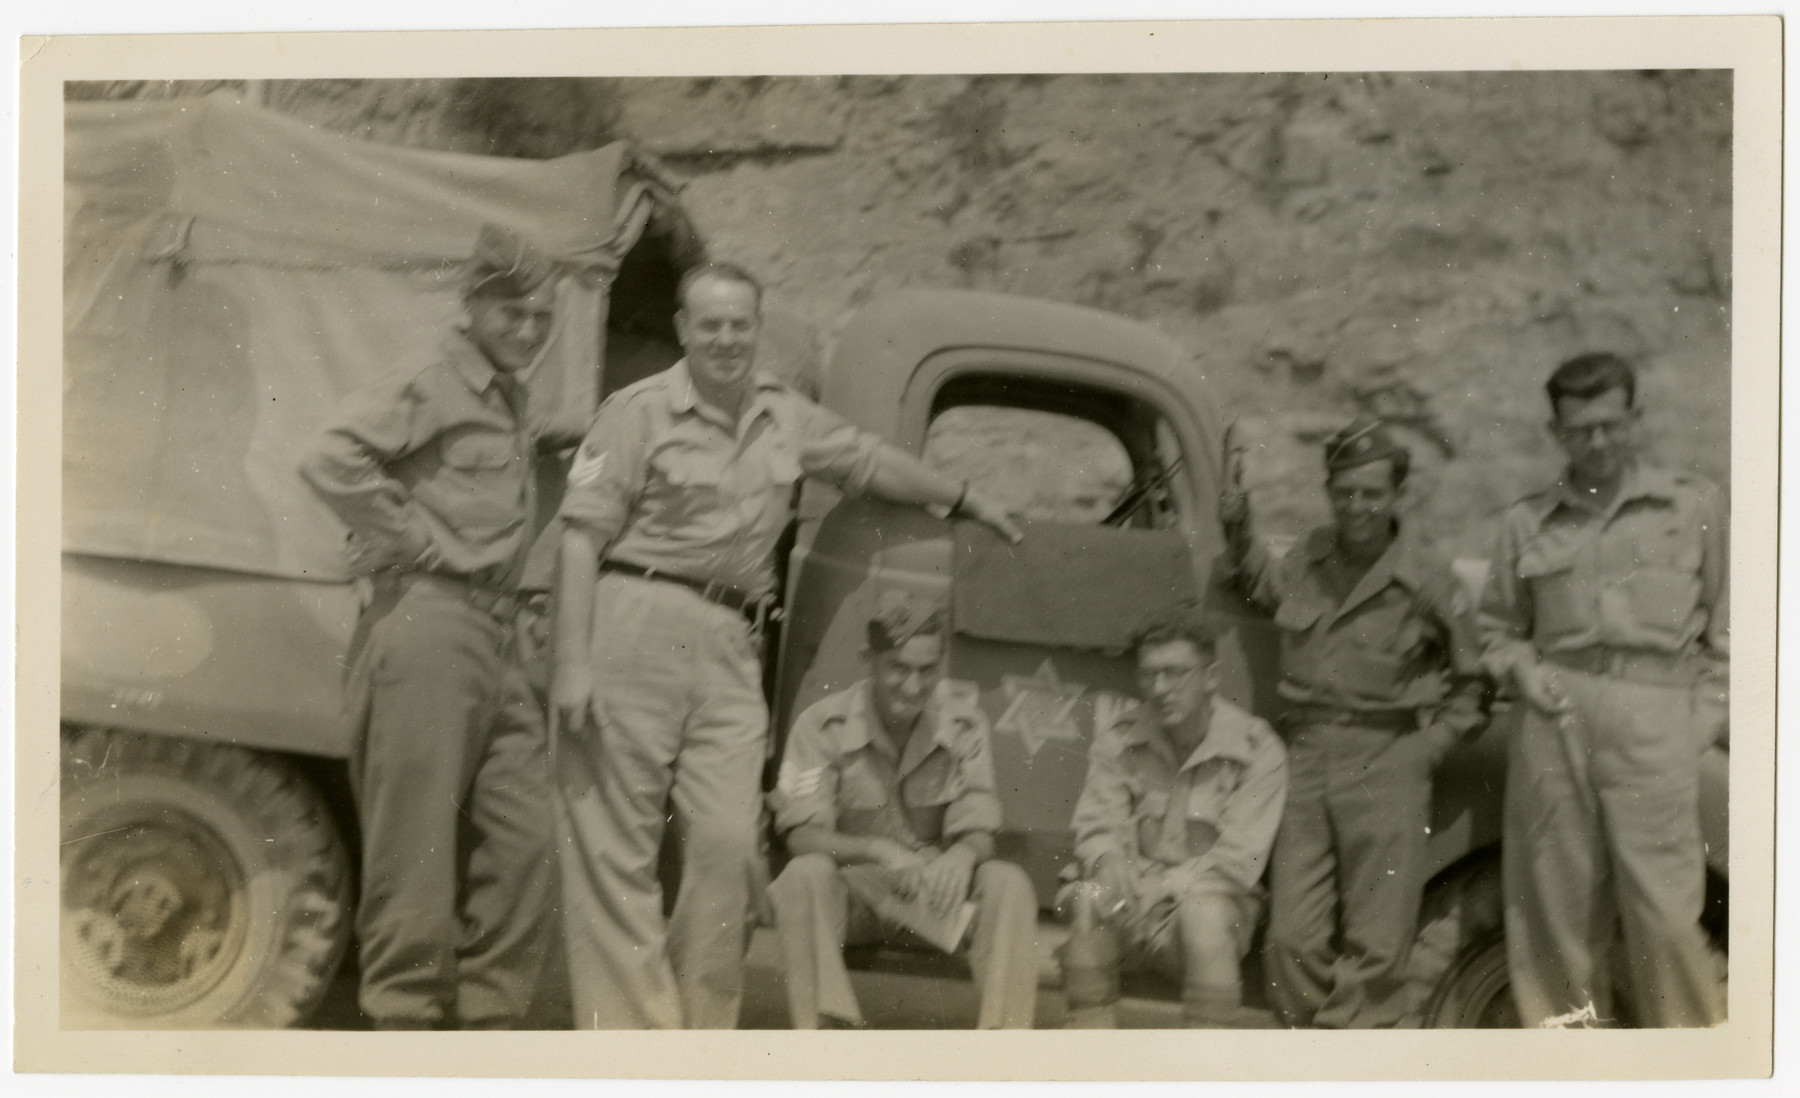 American Jewish soldiers and members of the Jewish Brigade pose together in front of a miltary truck decorated with a Star of David.